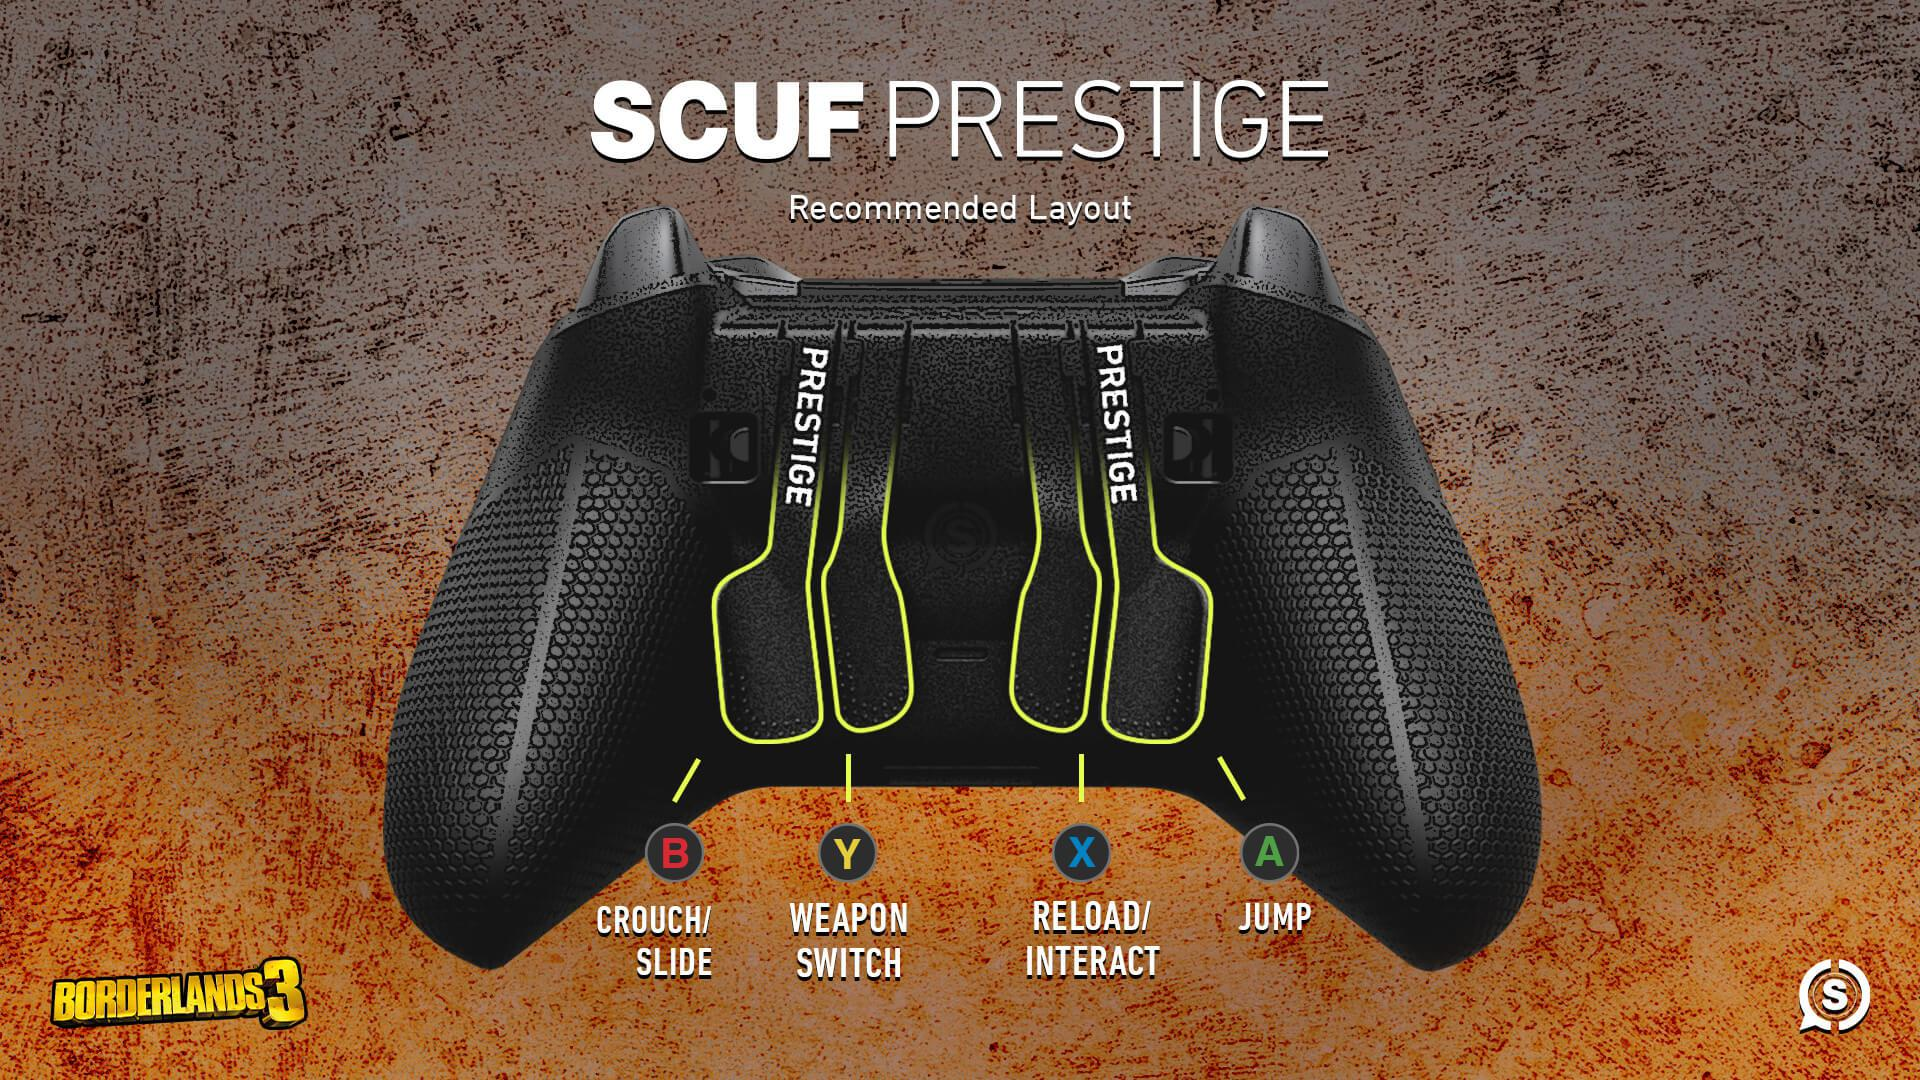 SCUF Prestige Borderlands 3 Configuration